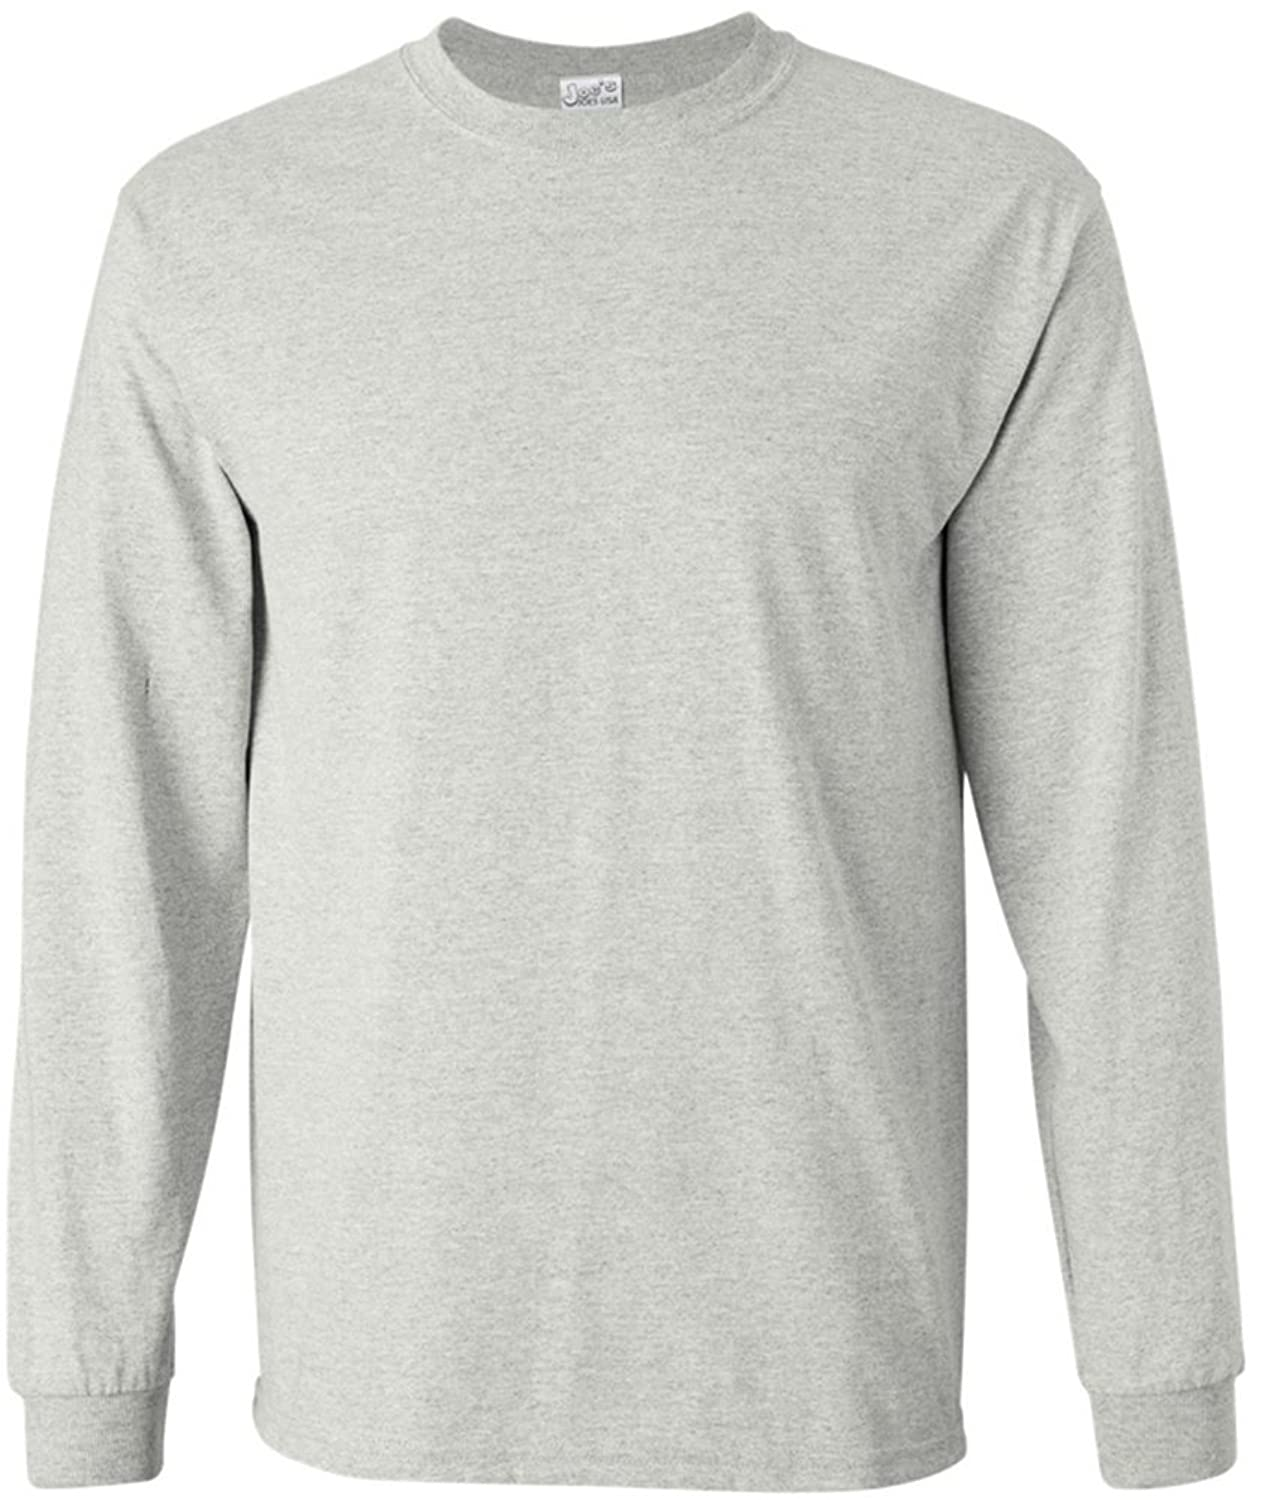 Amazon.com: Men's Long Sleeve Heavy Cotton Crew Neck T-Shirts in ...